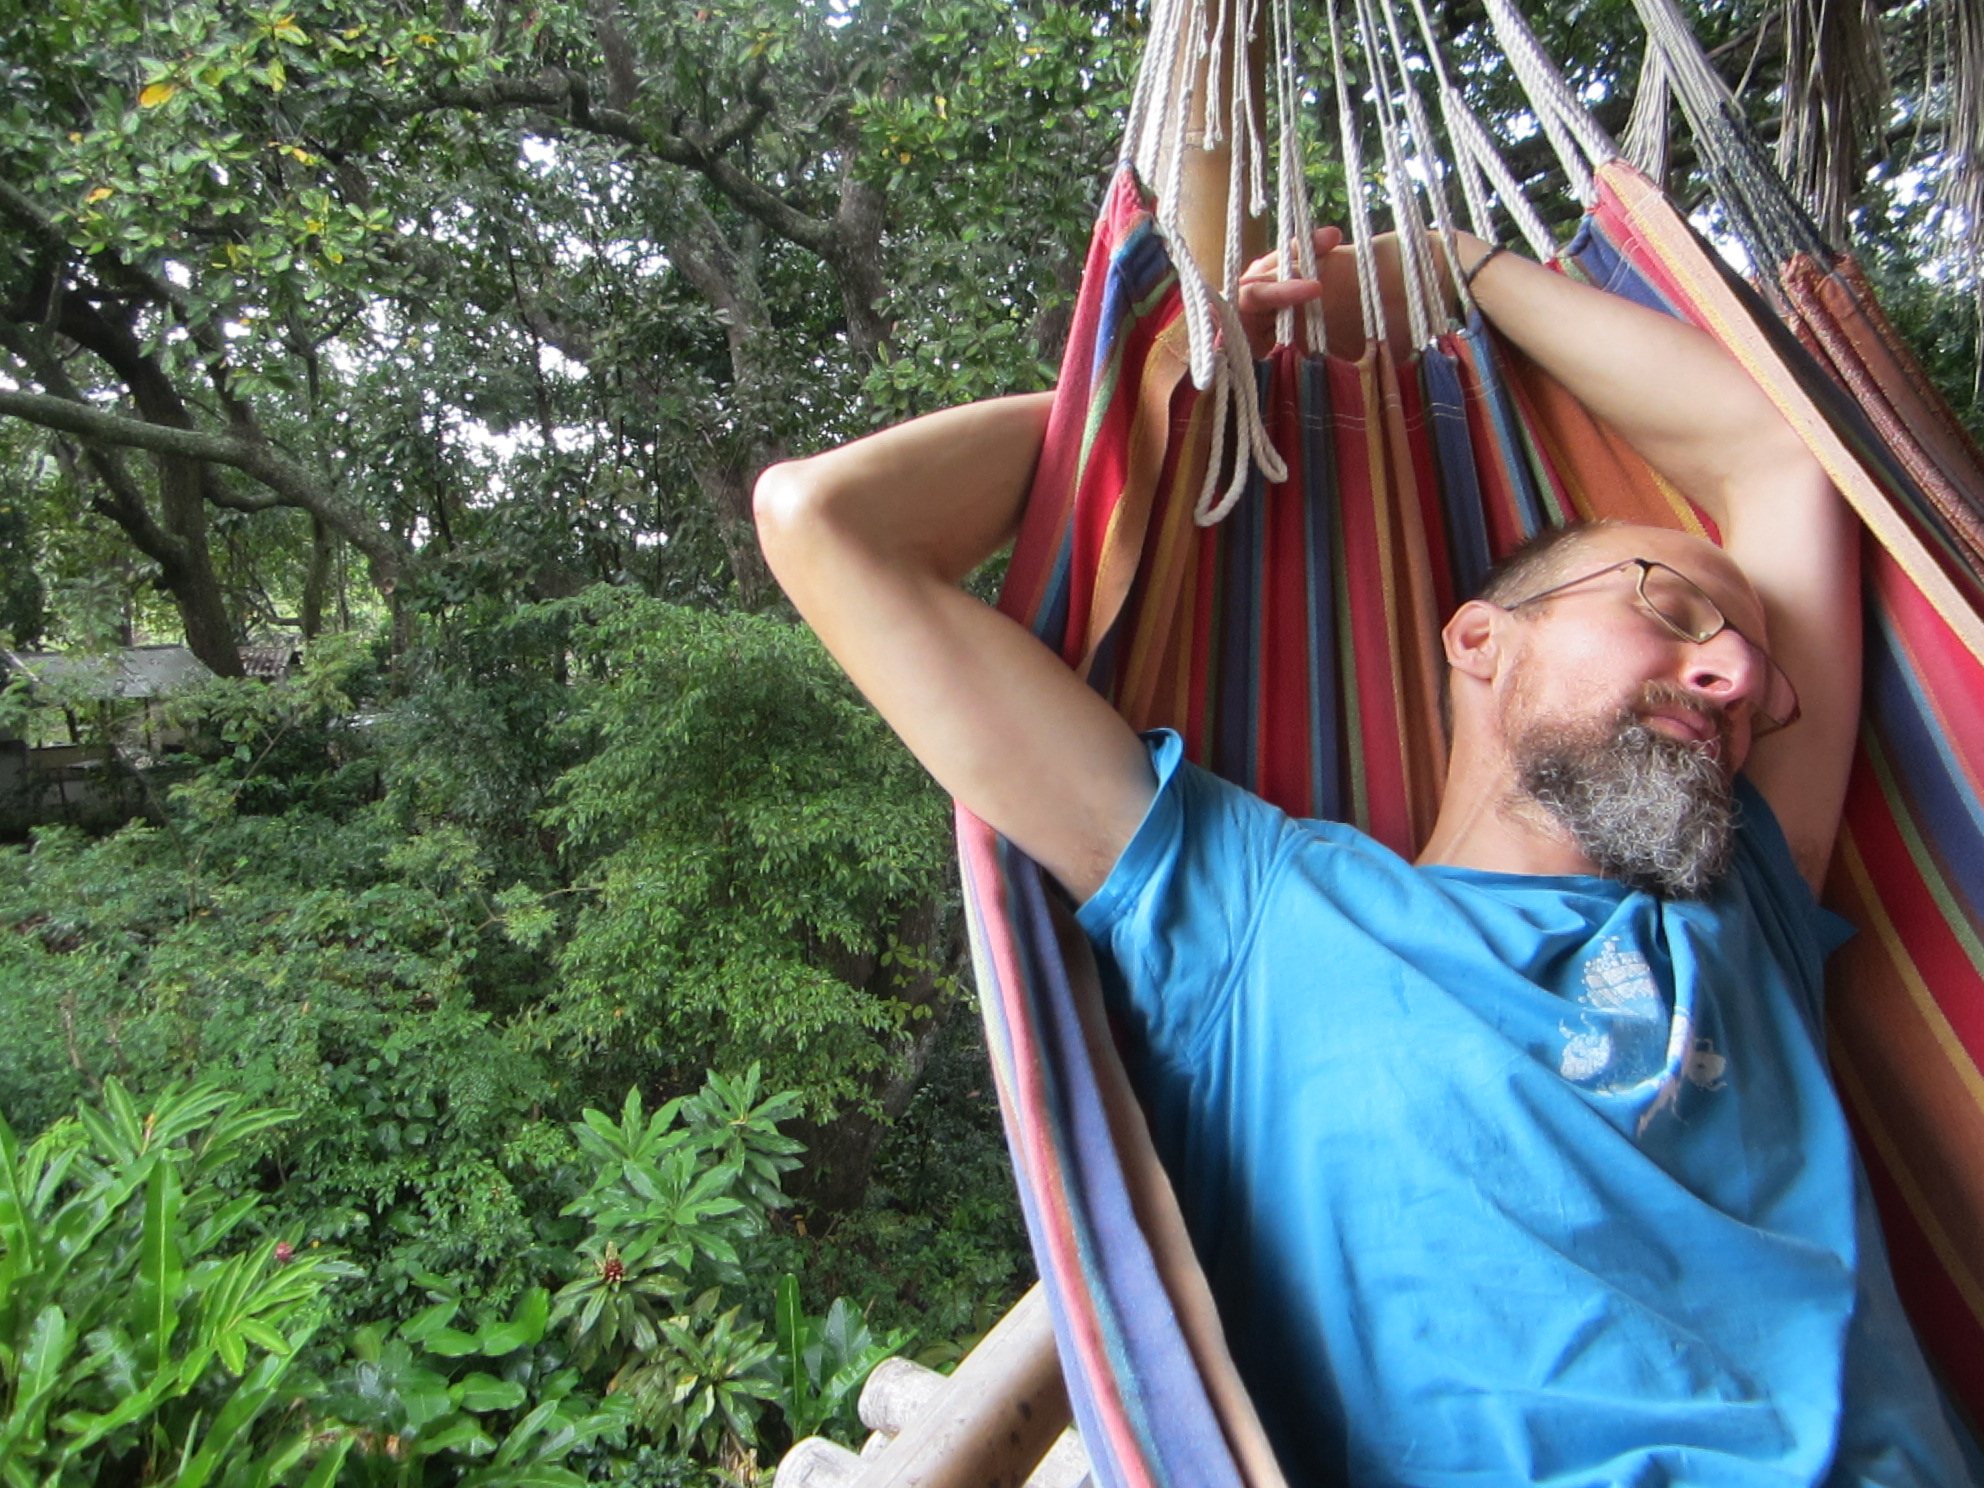 Recovering in a hammock